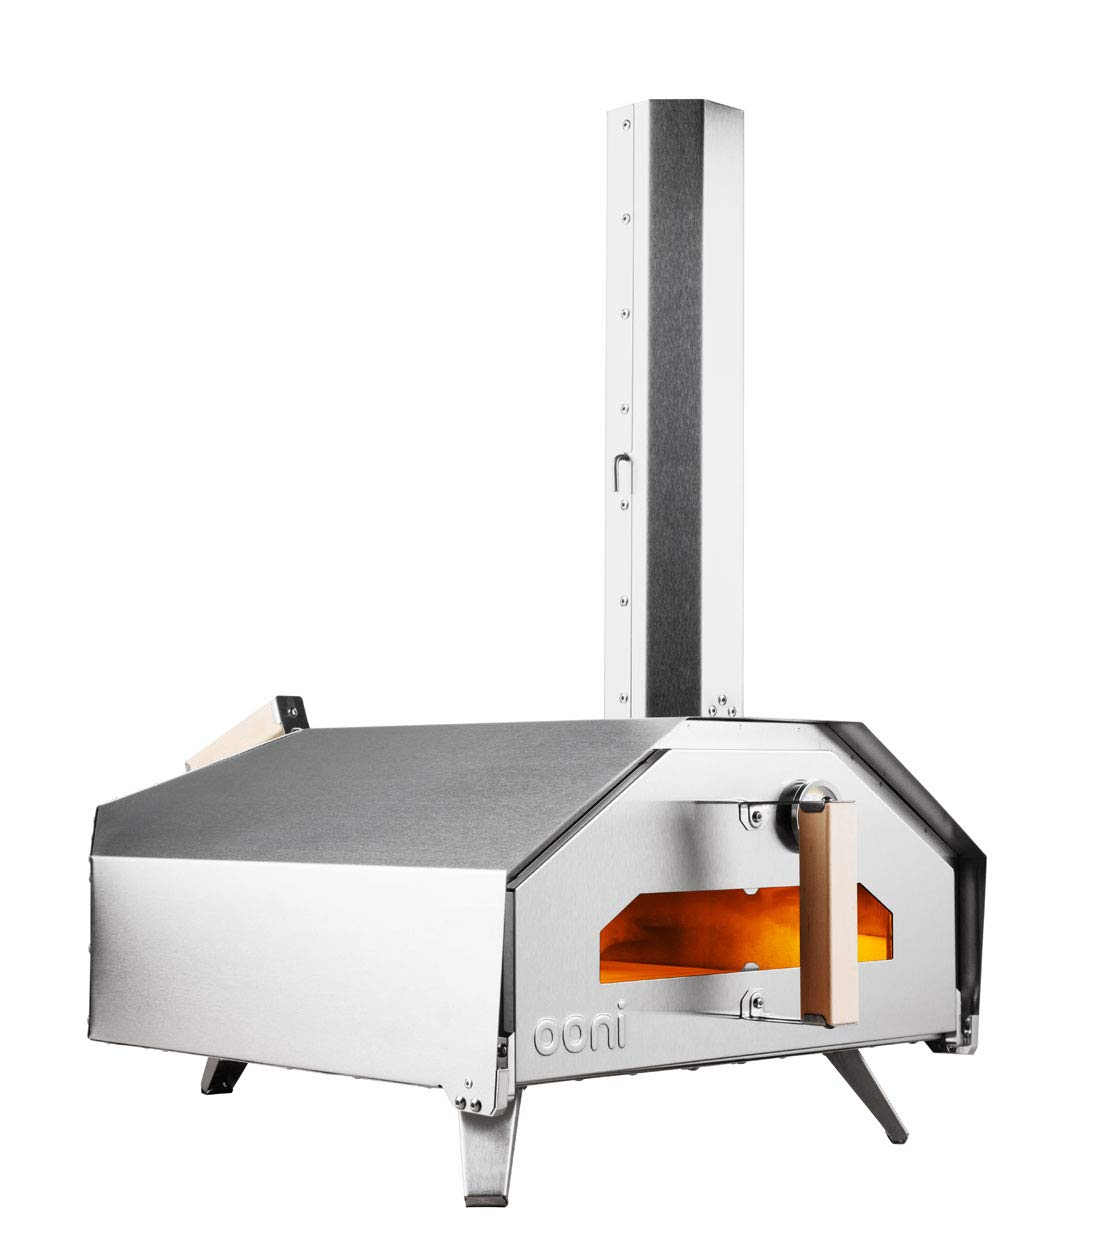 Ooni Pro Portable Outdoor Wood-Fired/Gas Pizza Oven